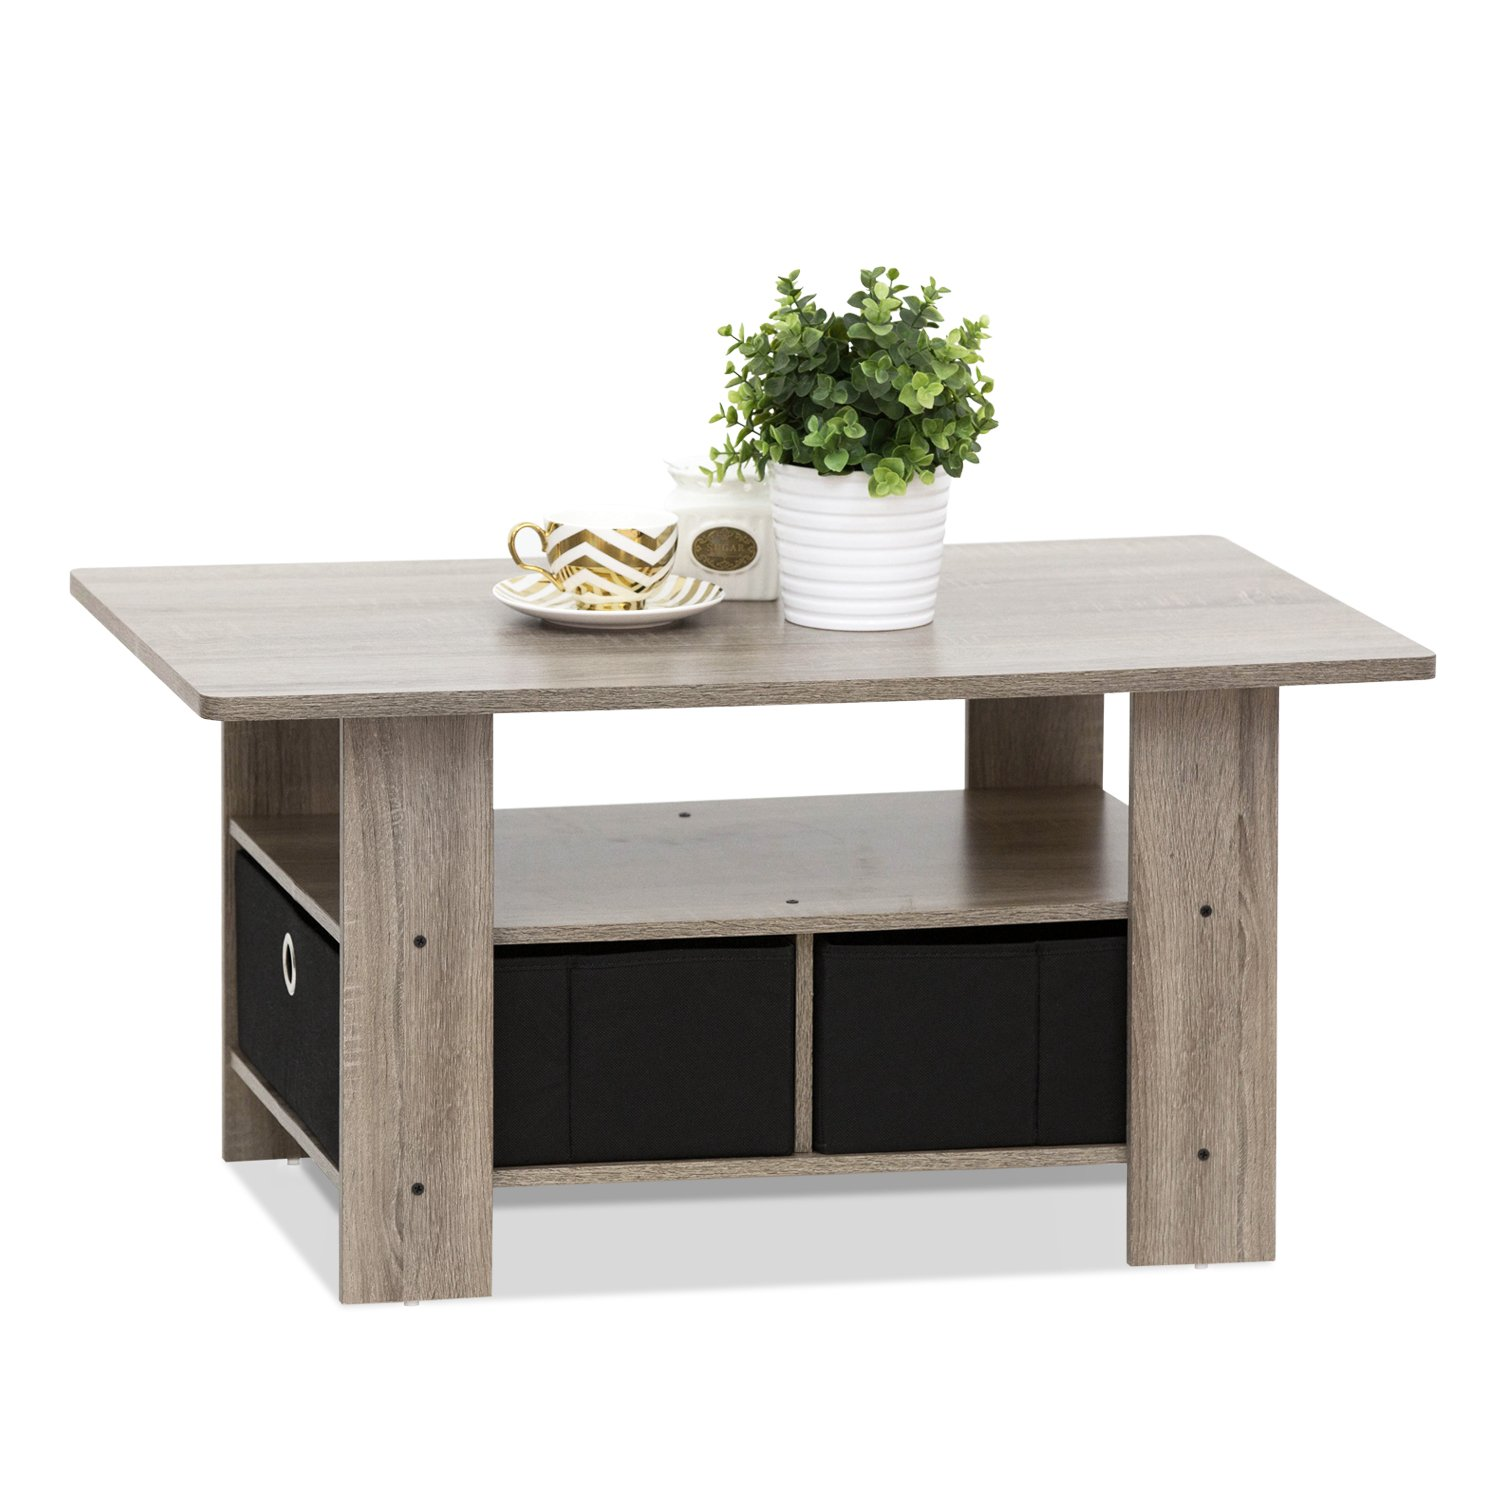 Amazon FURINNO GYW BK Coffee Table with Bin Drawer